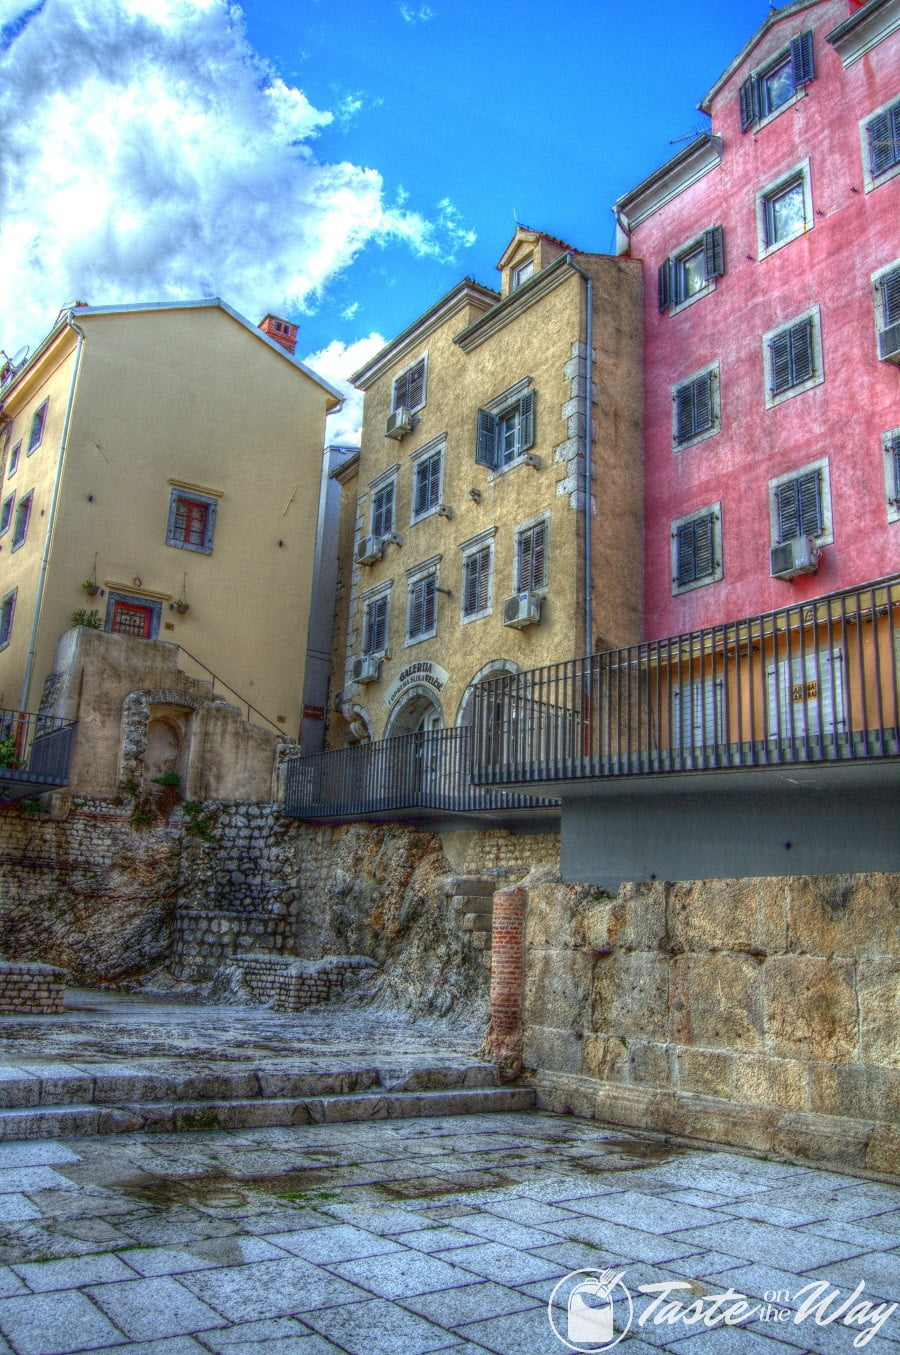 Check out these stunning pictures of the old town of Rijeka, #Croatia #photography #hdr #travel @tasteontheway